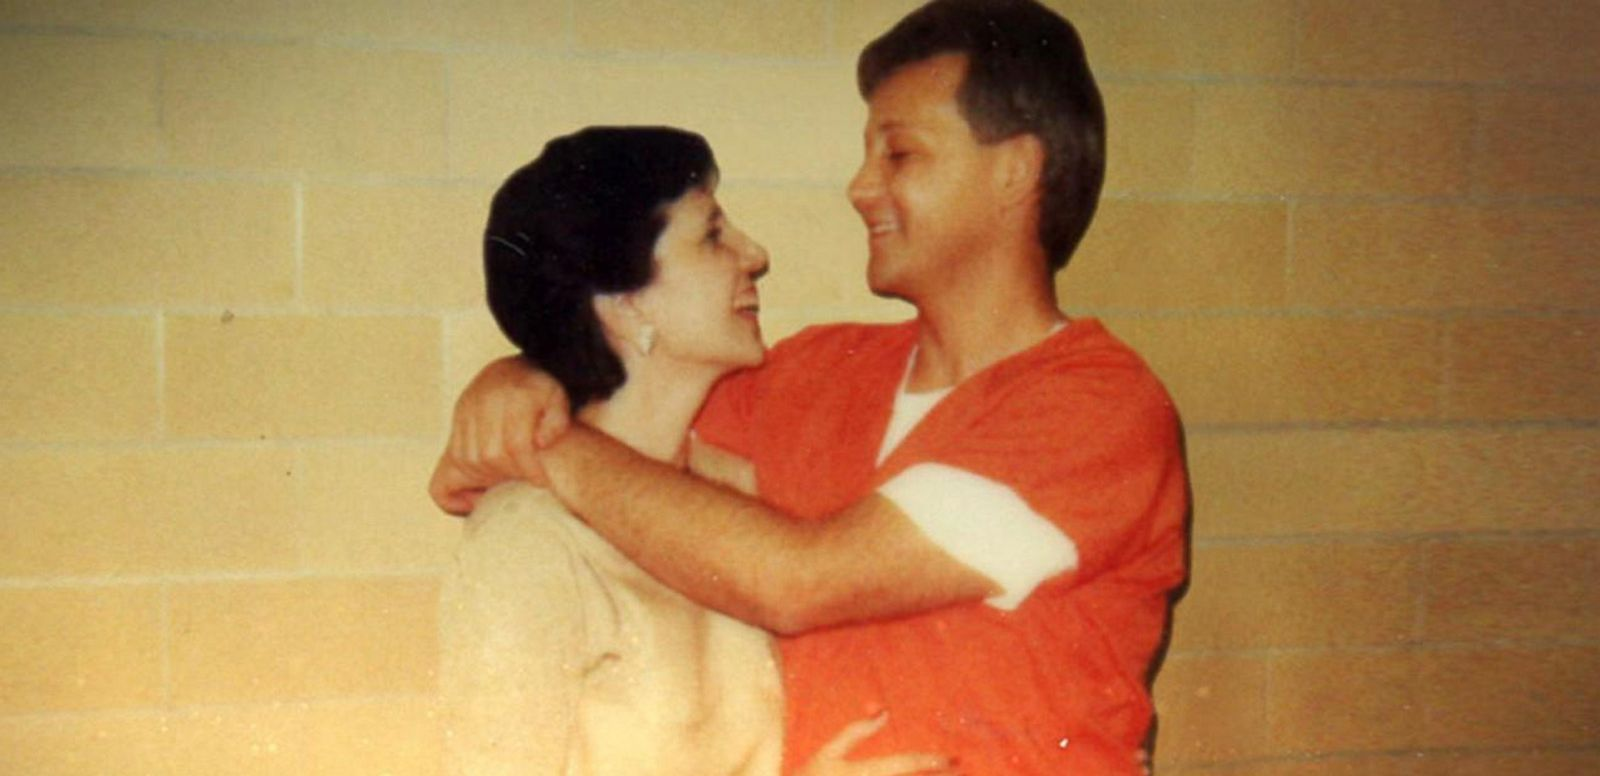 VIDEO: Why This Woman Fell in Love With a Convicted Killer on Death Row